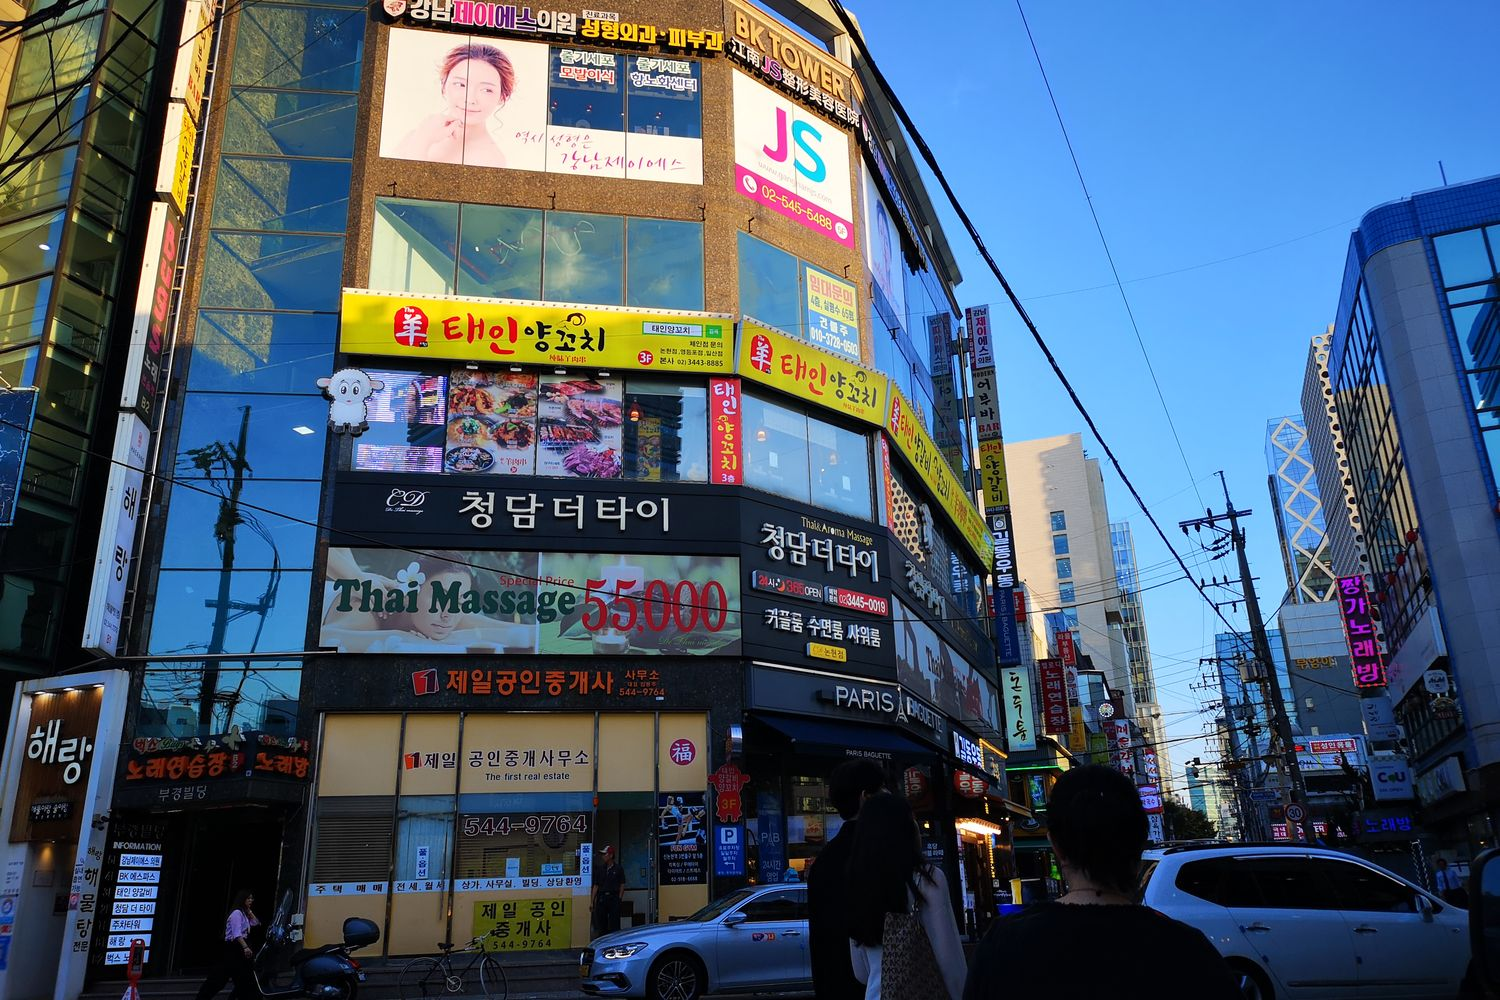 One of several Thai massage shops in South Korea. Massage is one of the common jobs that illegal Thai workers take up in the country. (Photo by Kornchanok Raksaseri)